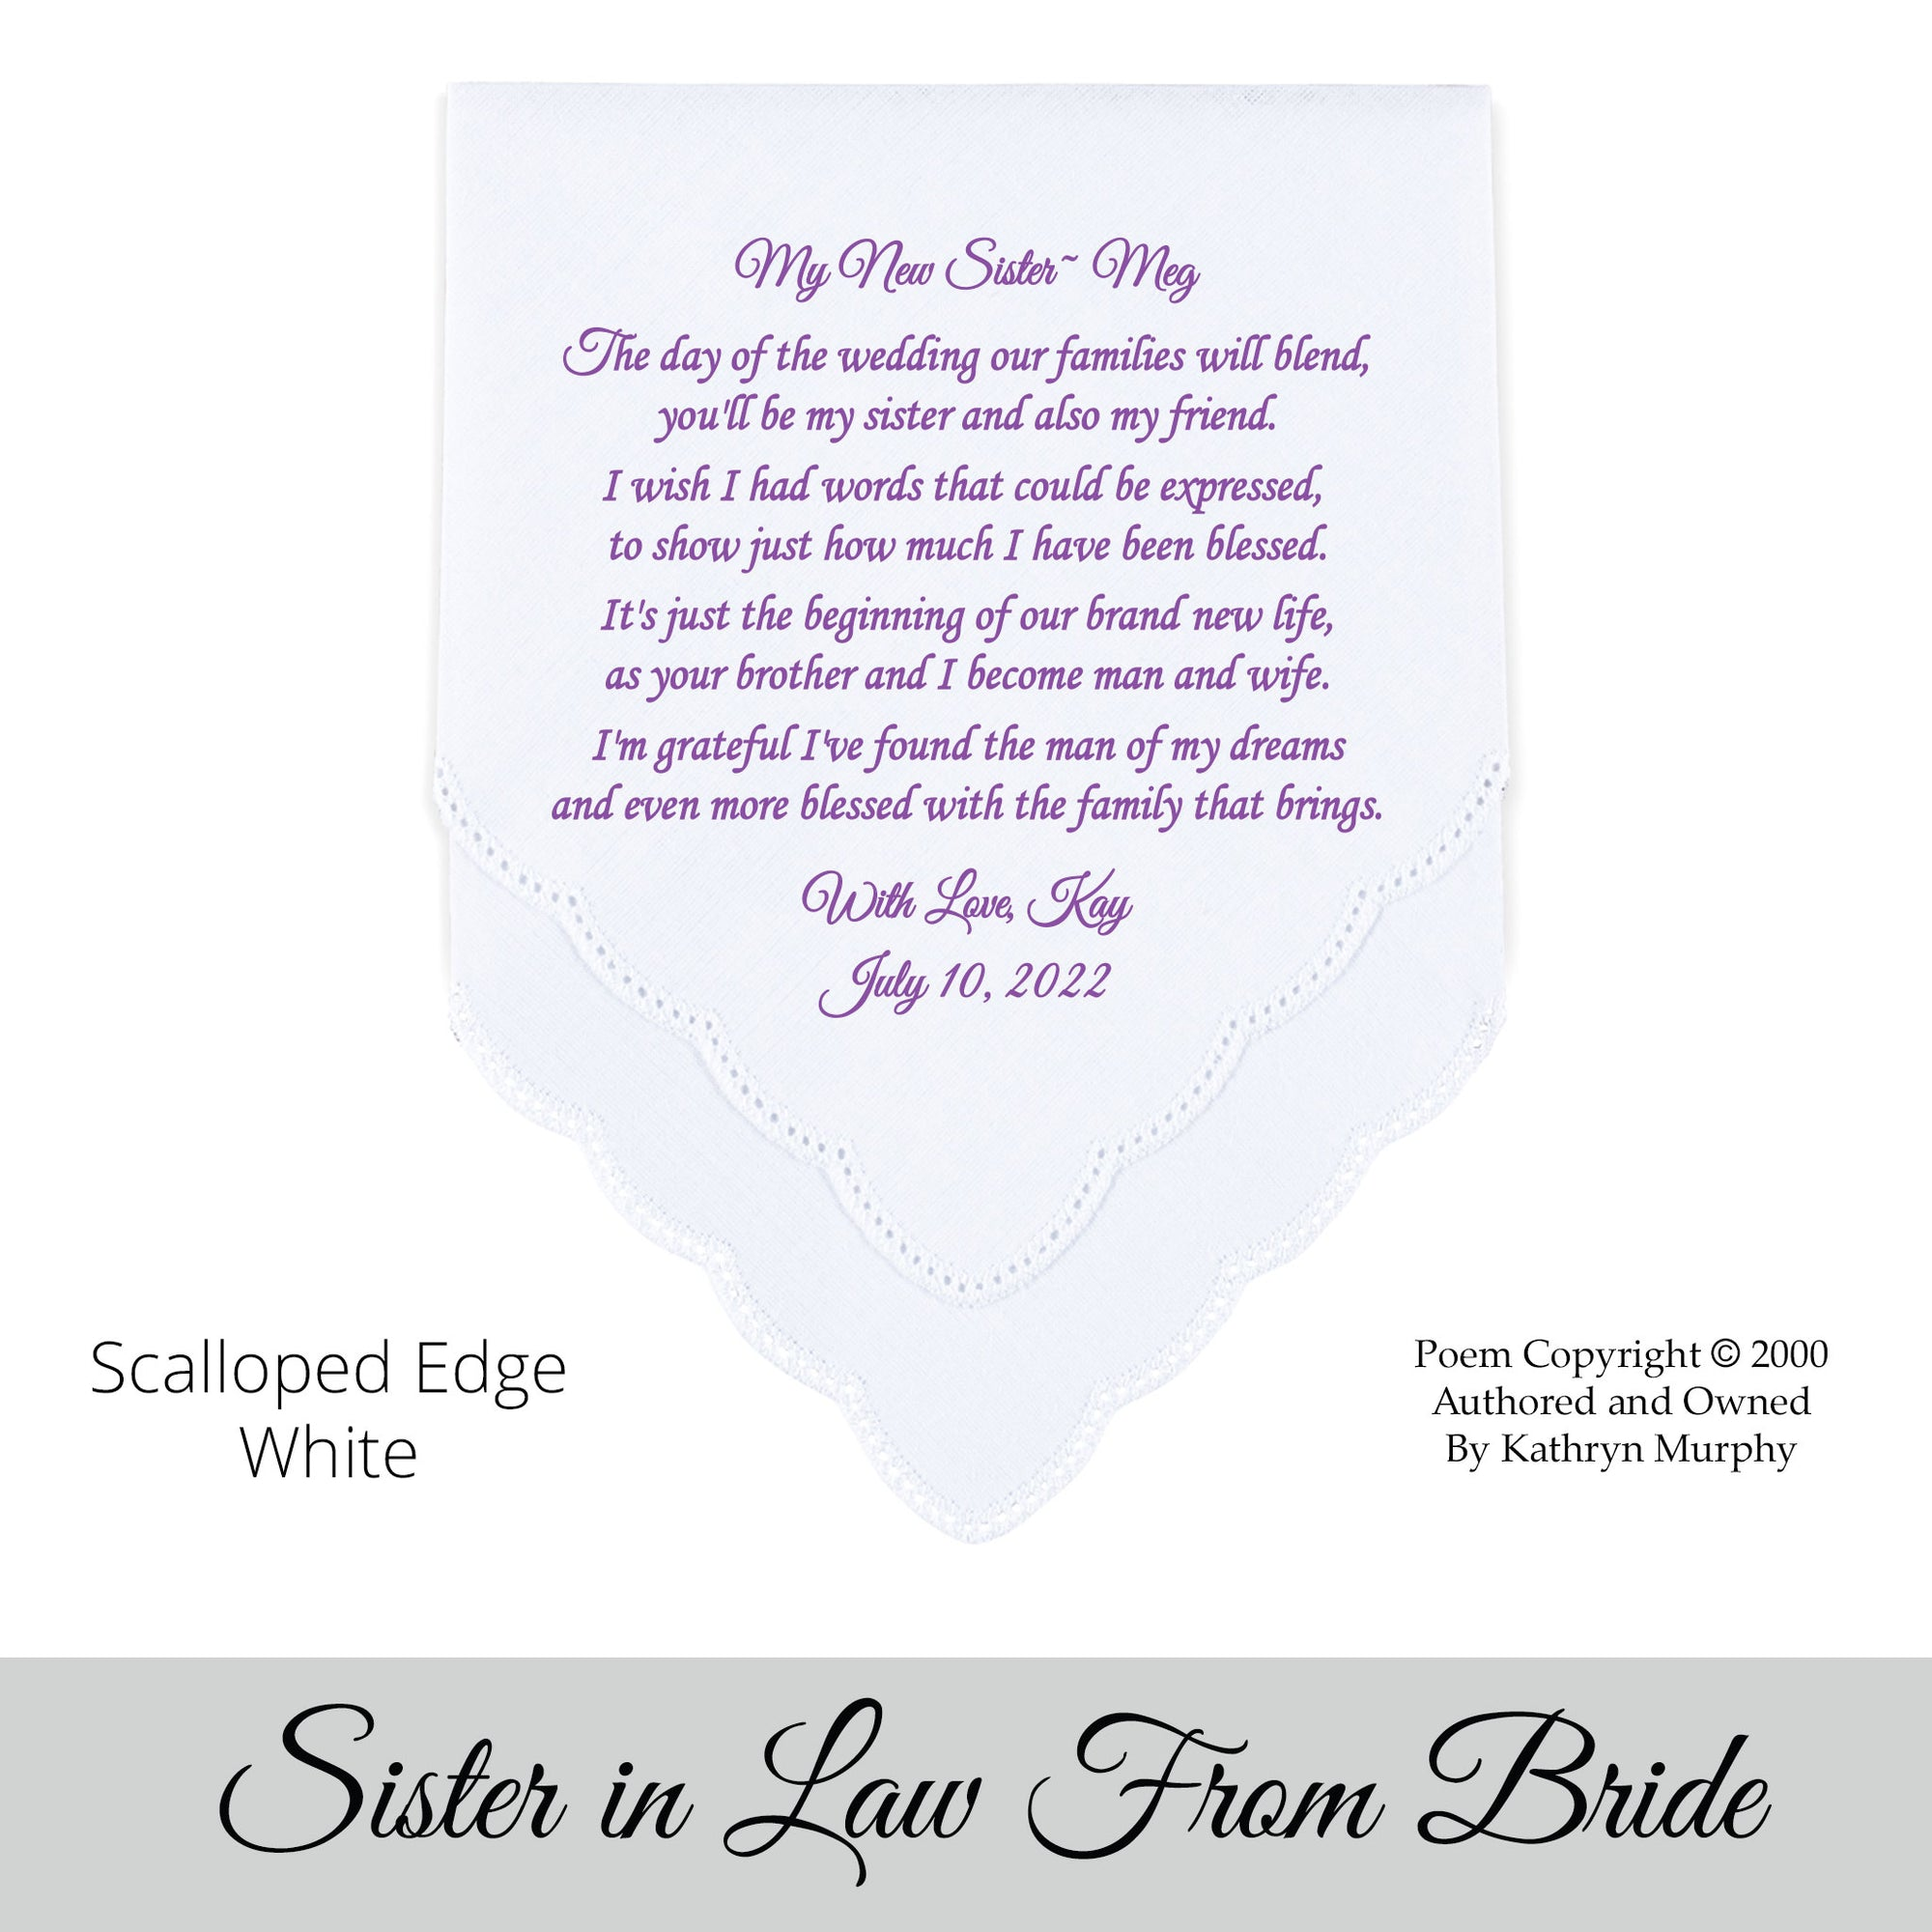 Embroidered Wedding Handkerchief Monogrammed poem Sister in Law FREE matching gift envelope BRIDE heirloom shells personalized hankie gift e